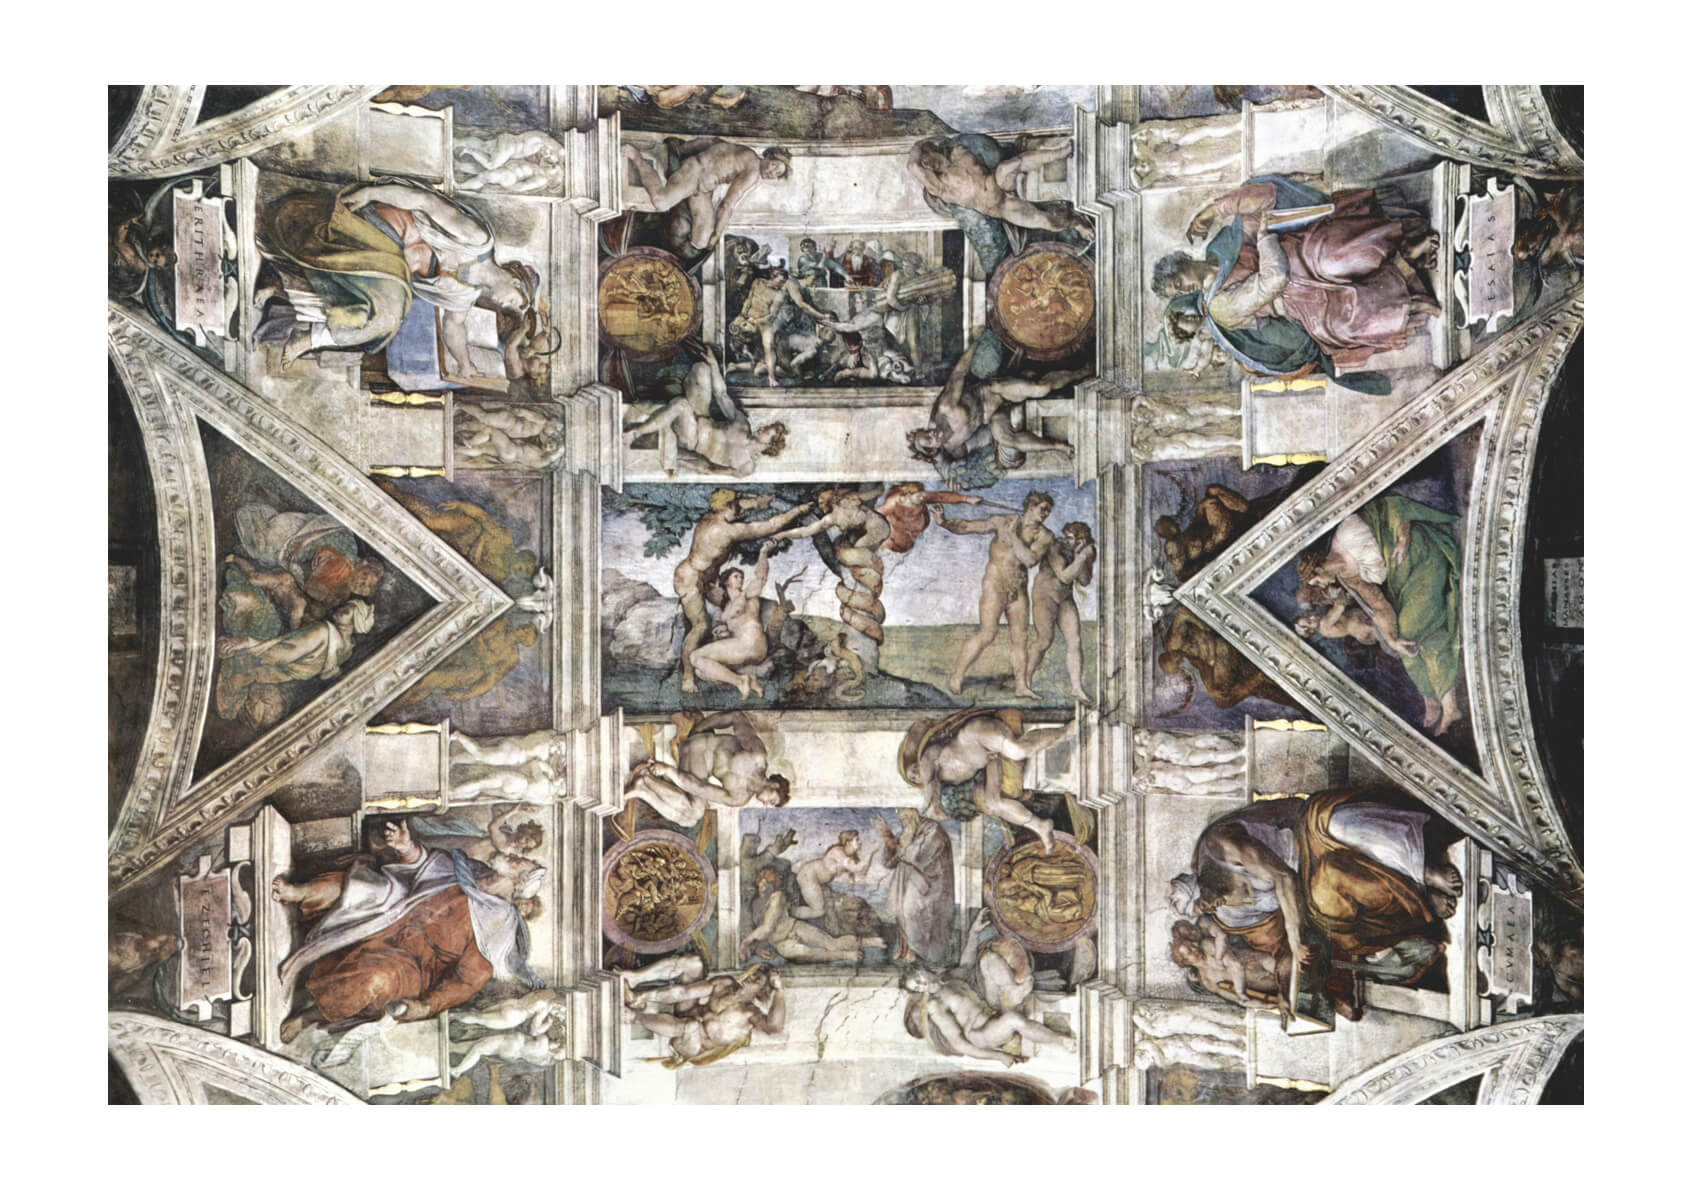 Michelangelo - Sistine Chapel Section 4